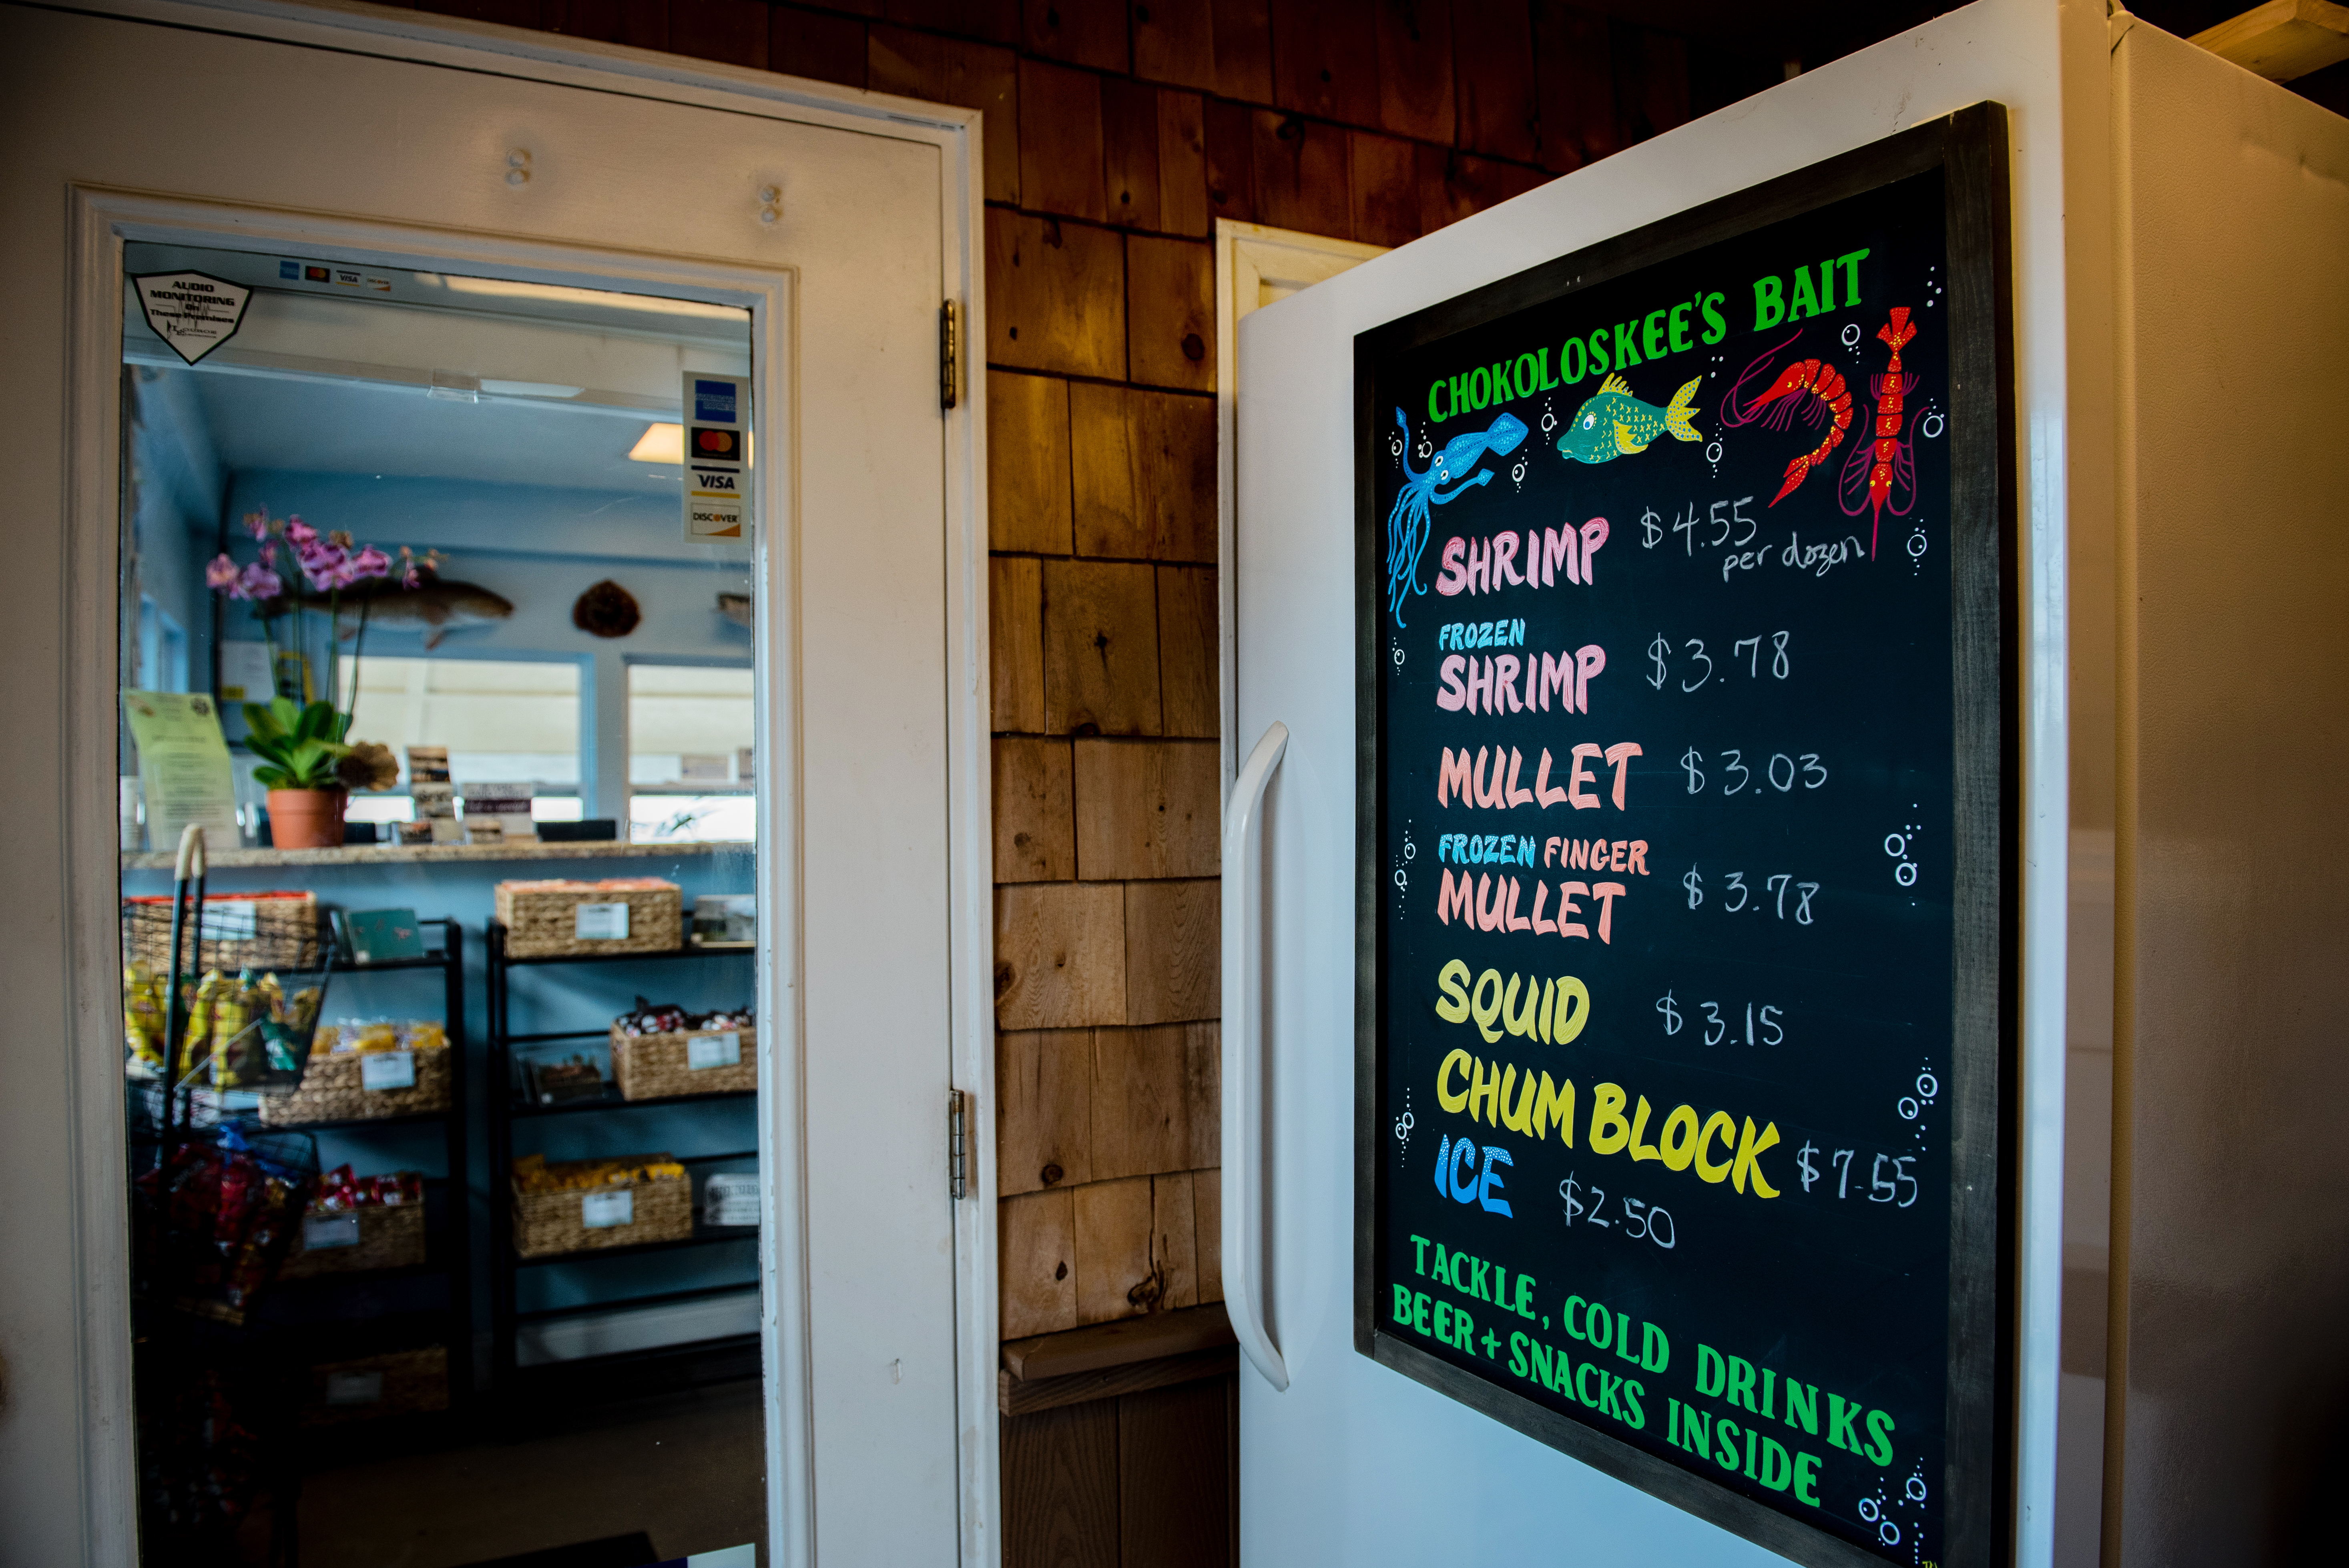 Entrance to our bait and tackle shop.